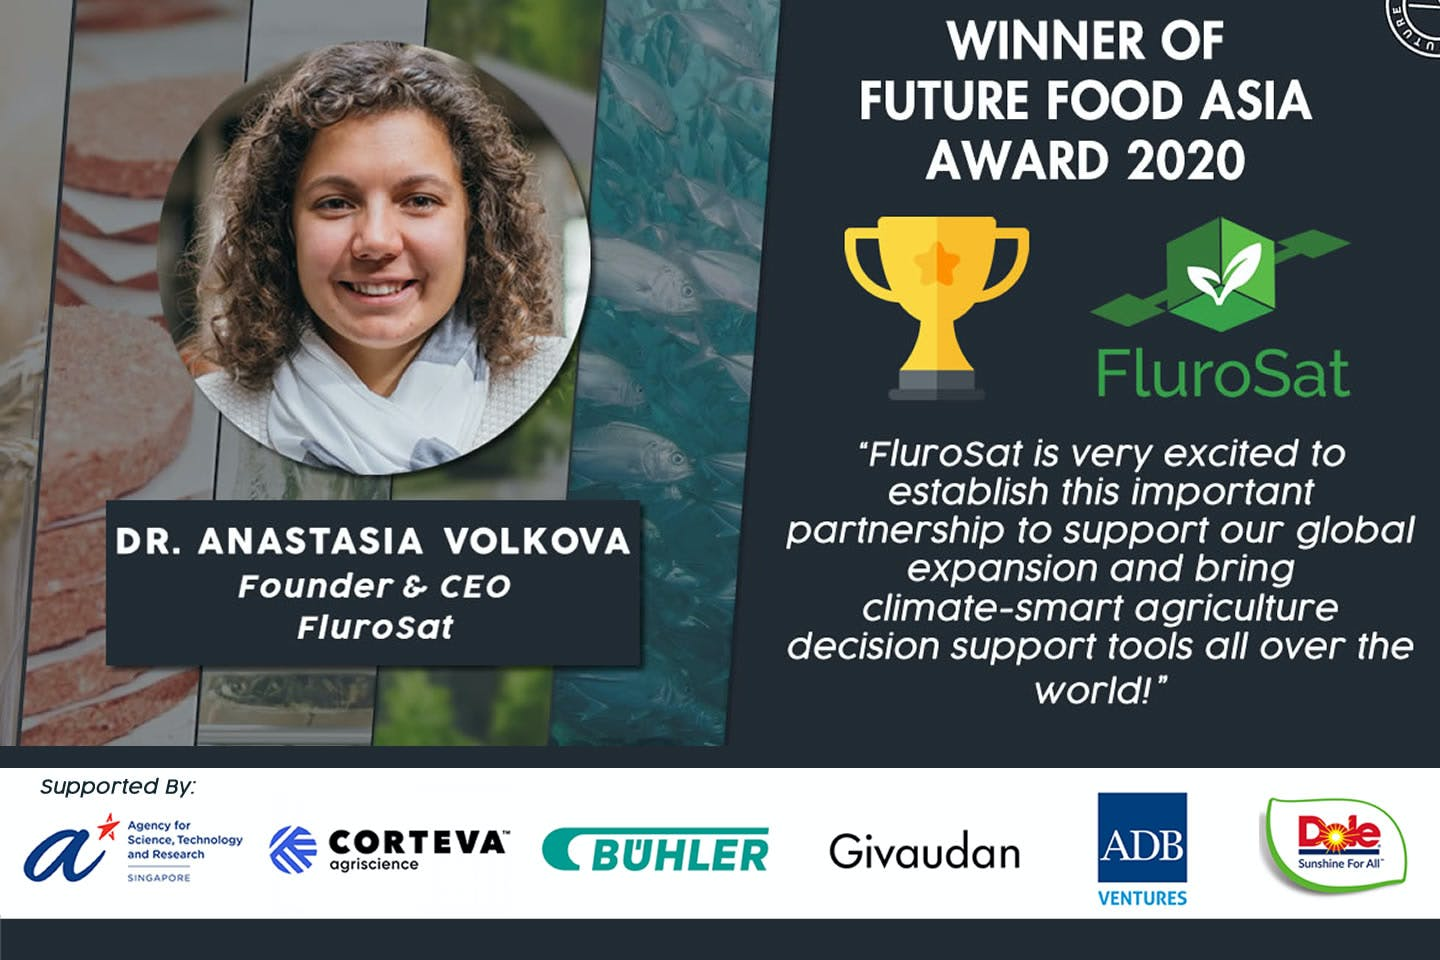 FluroSat from Australia wins Future Food Asia 2020